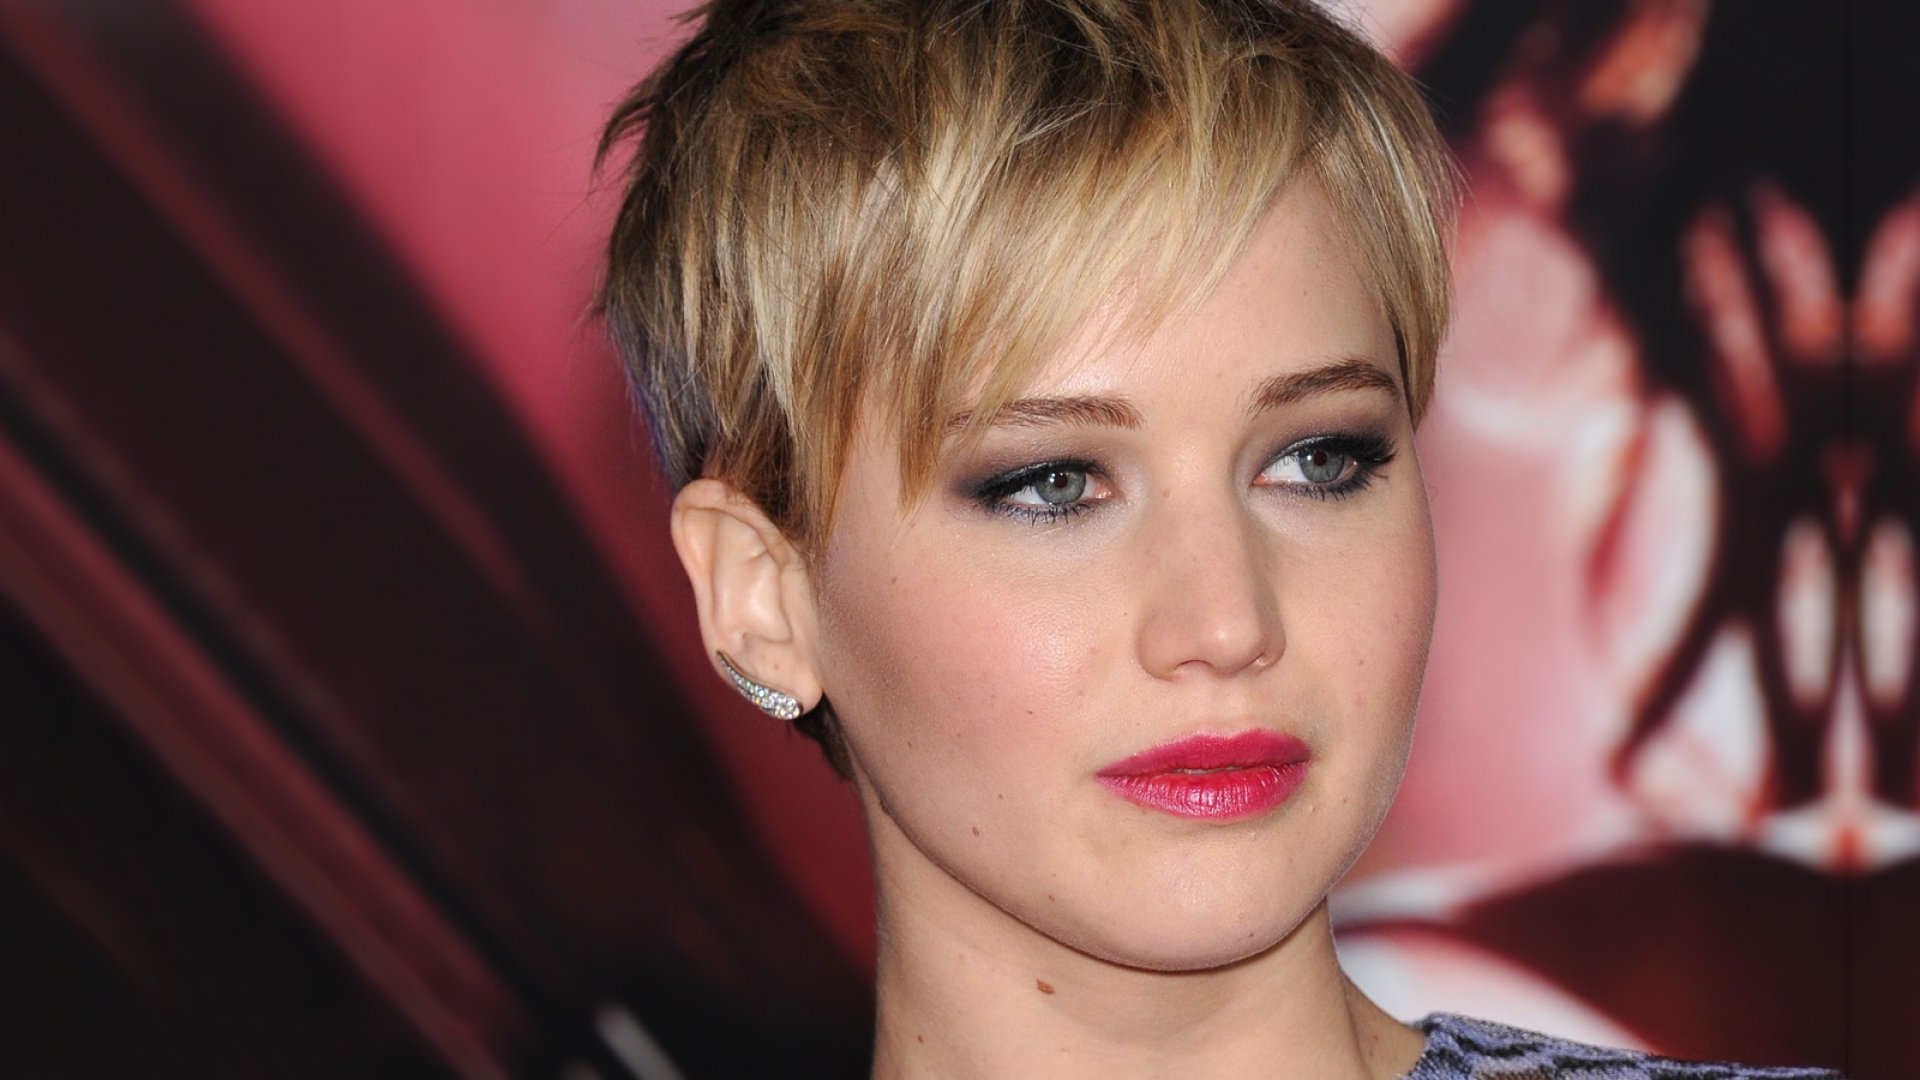 FBI, Apple Trying to Find Source of Nude Celebrity Photo Leaks